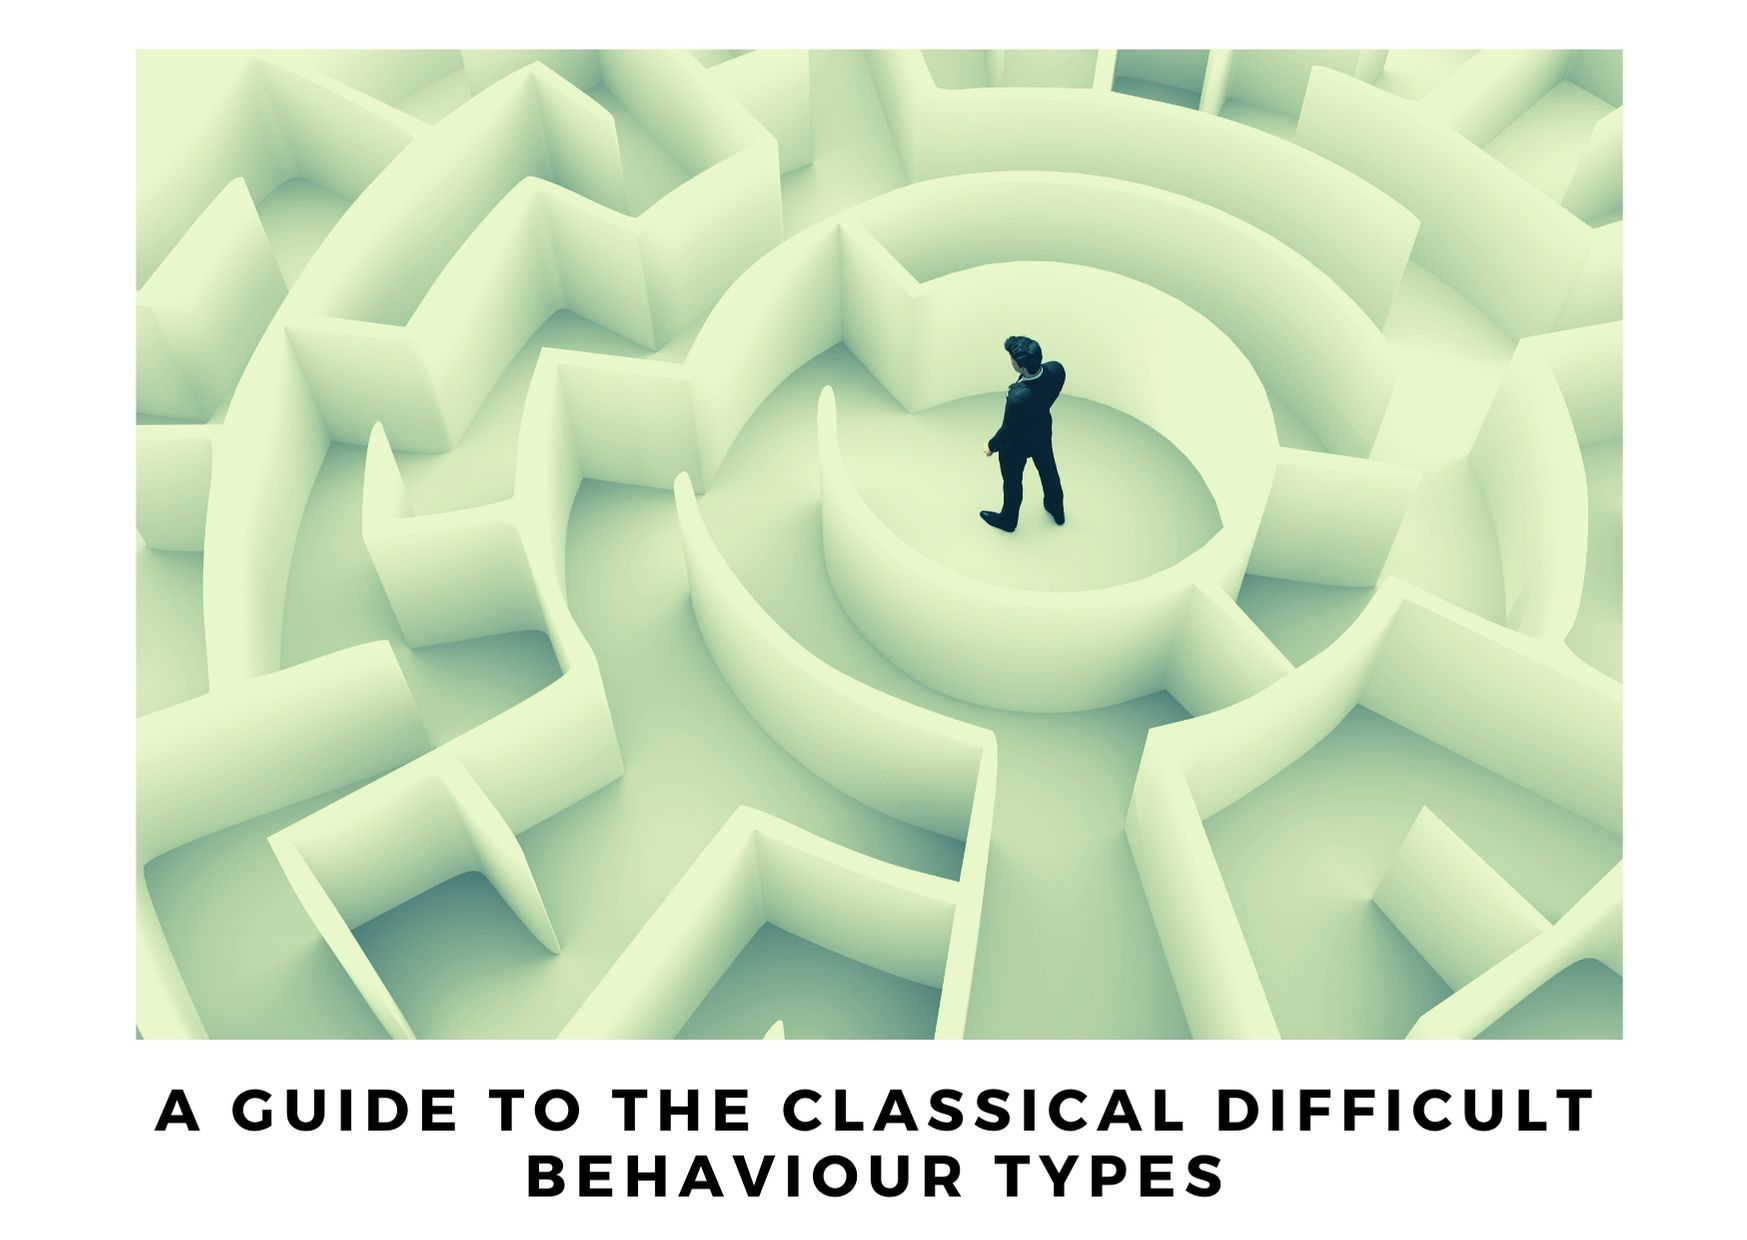 A guide to the classical difficult behaviour types